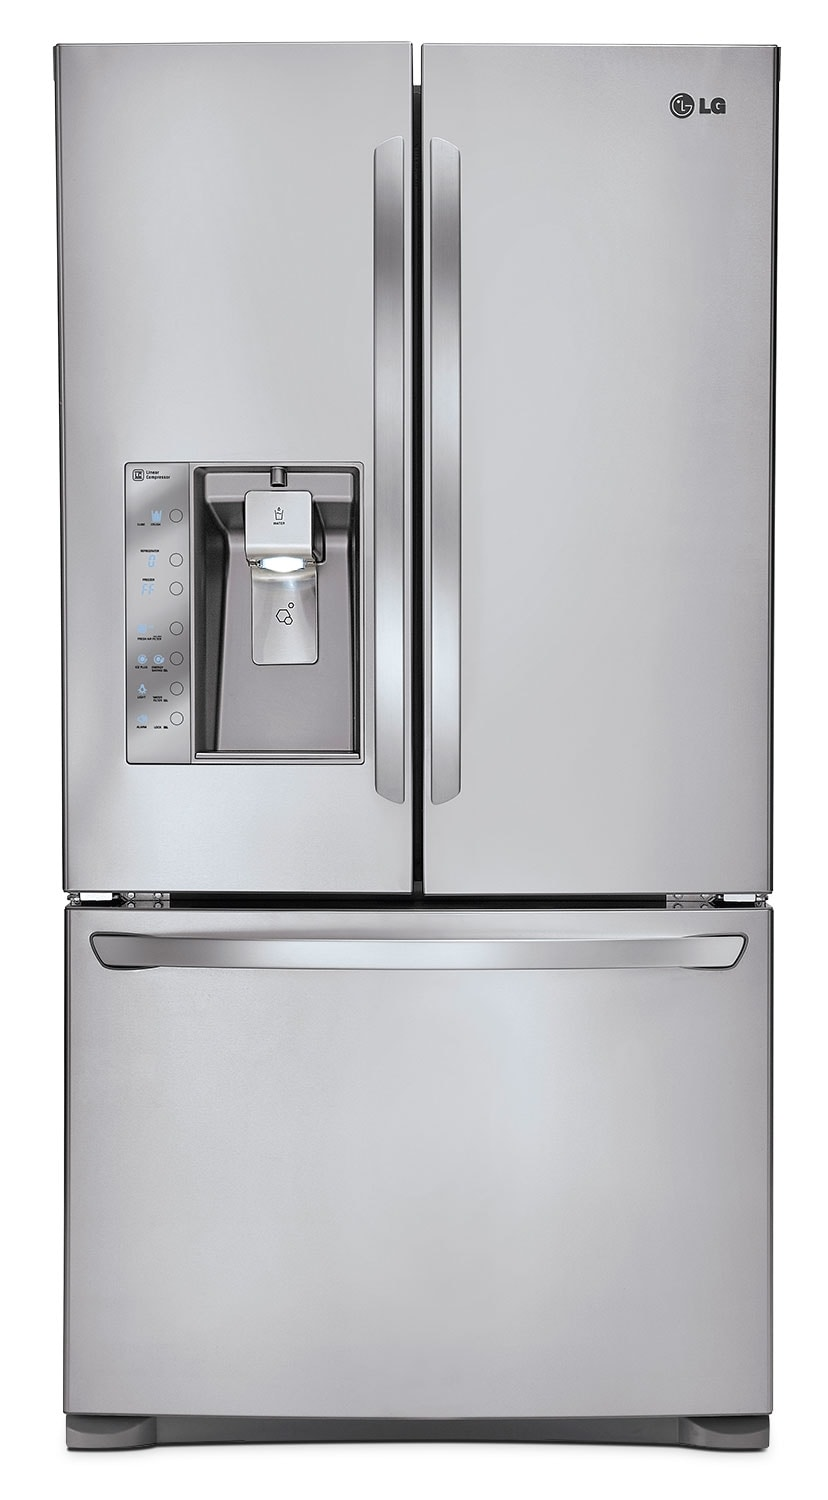 LG Appliances Stainless Steel French Door Refrigerator (24 Cu. Ft.) - LFXC24726S